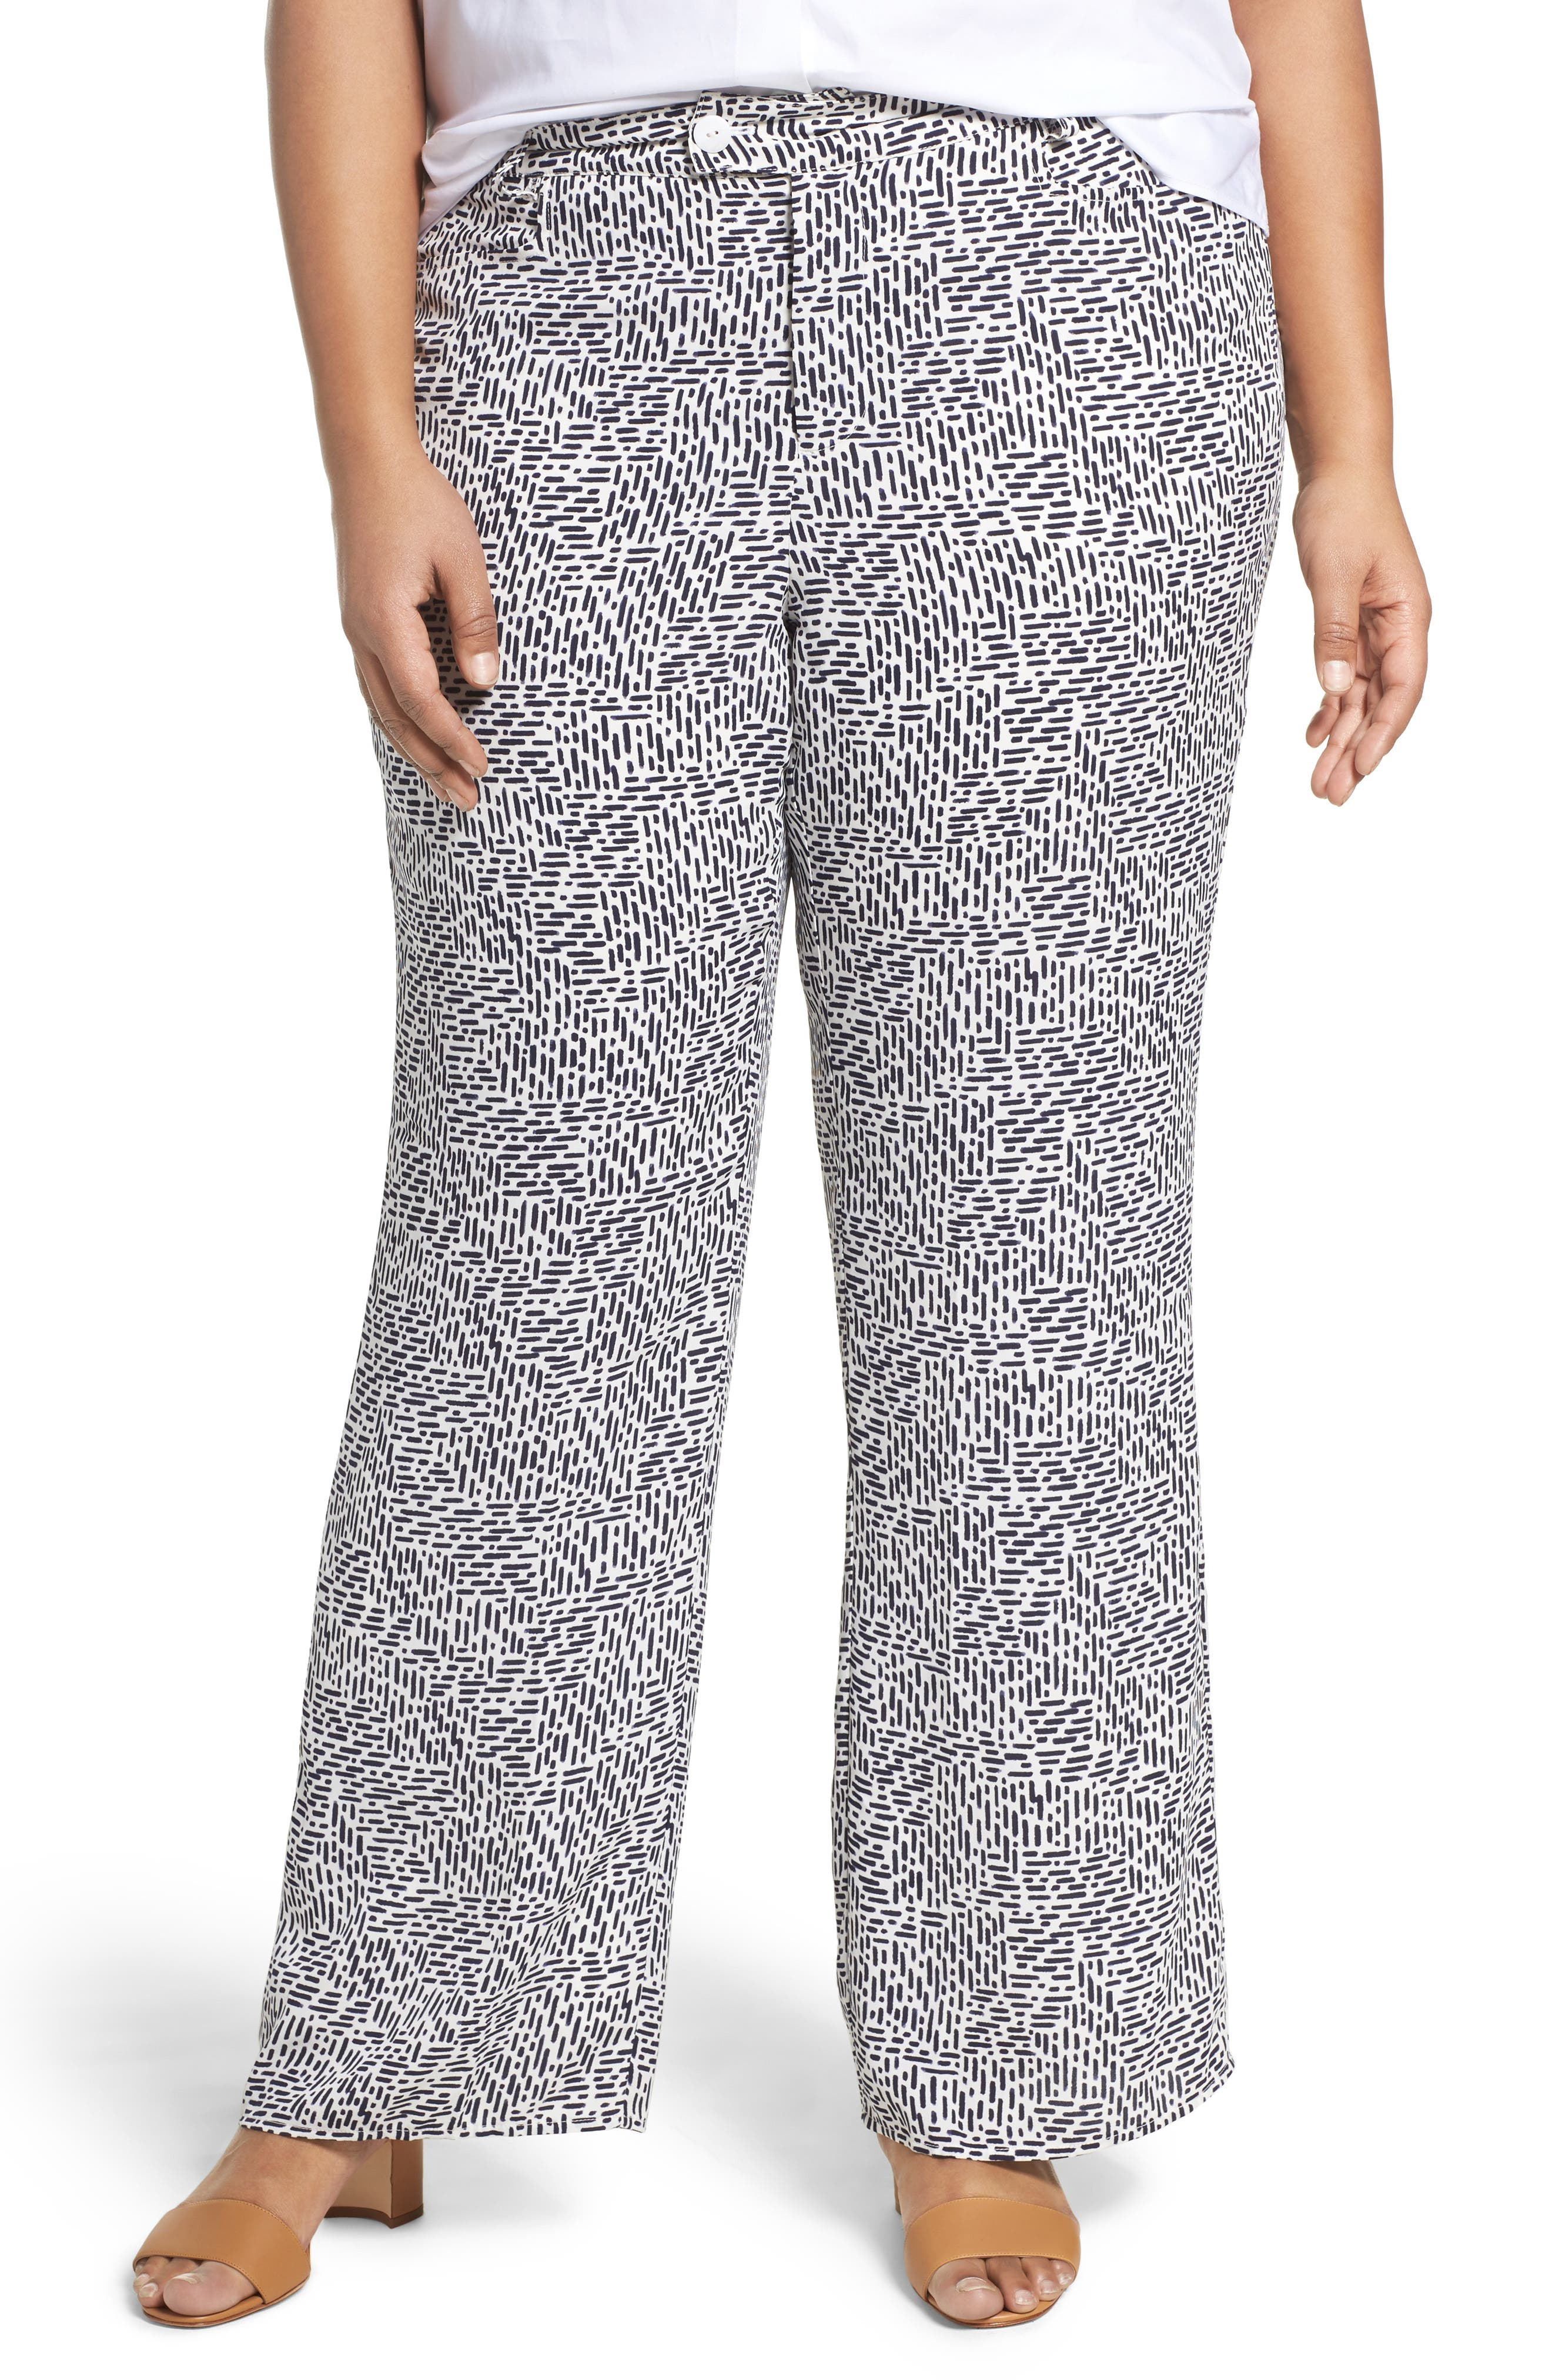 Alternate Image 1 Selected - Foxcroft Dots & Dashes Flare Leg Pants (Plus Size)